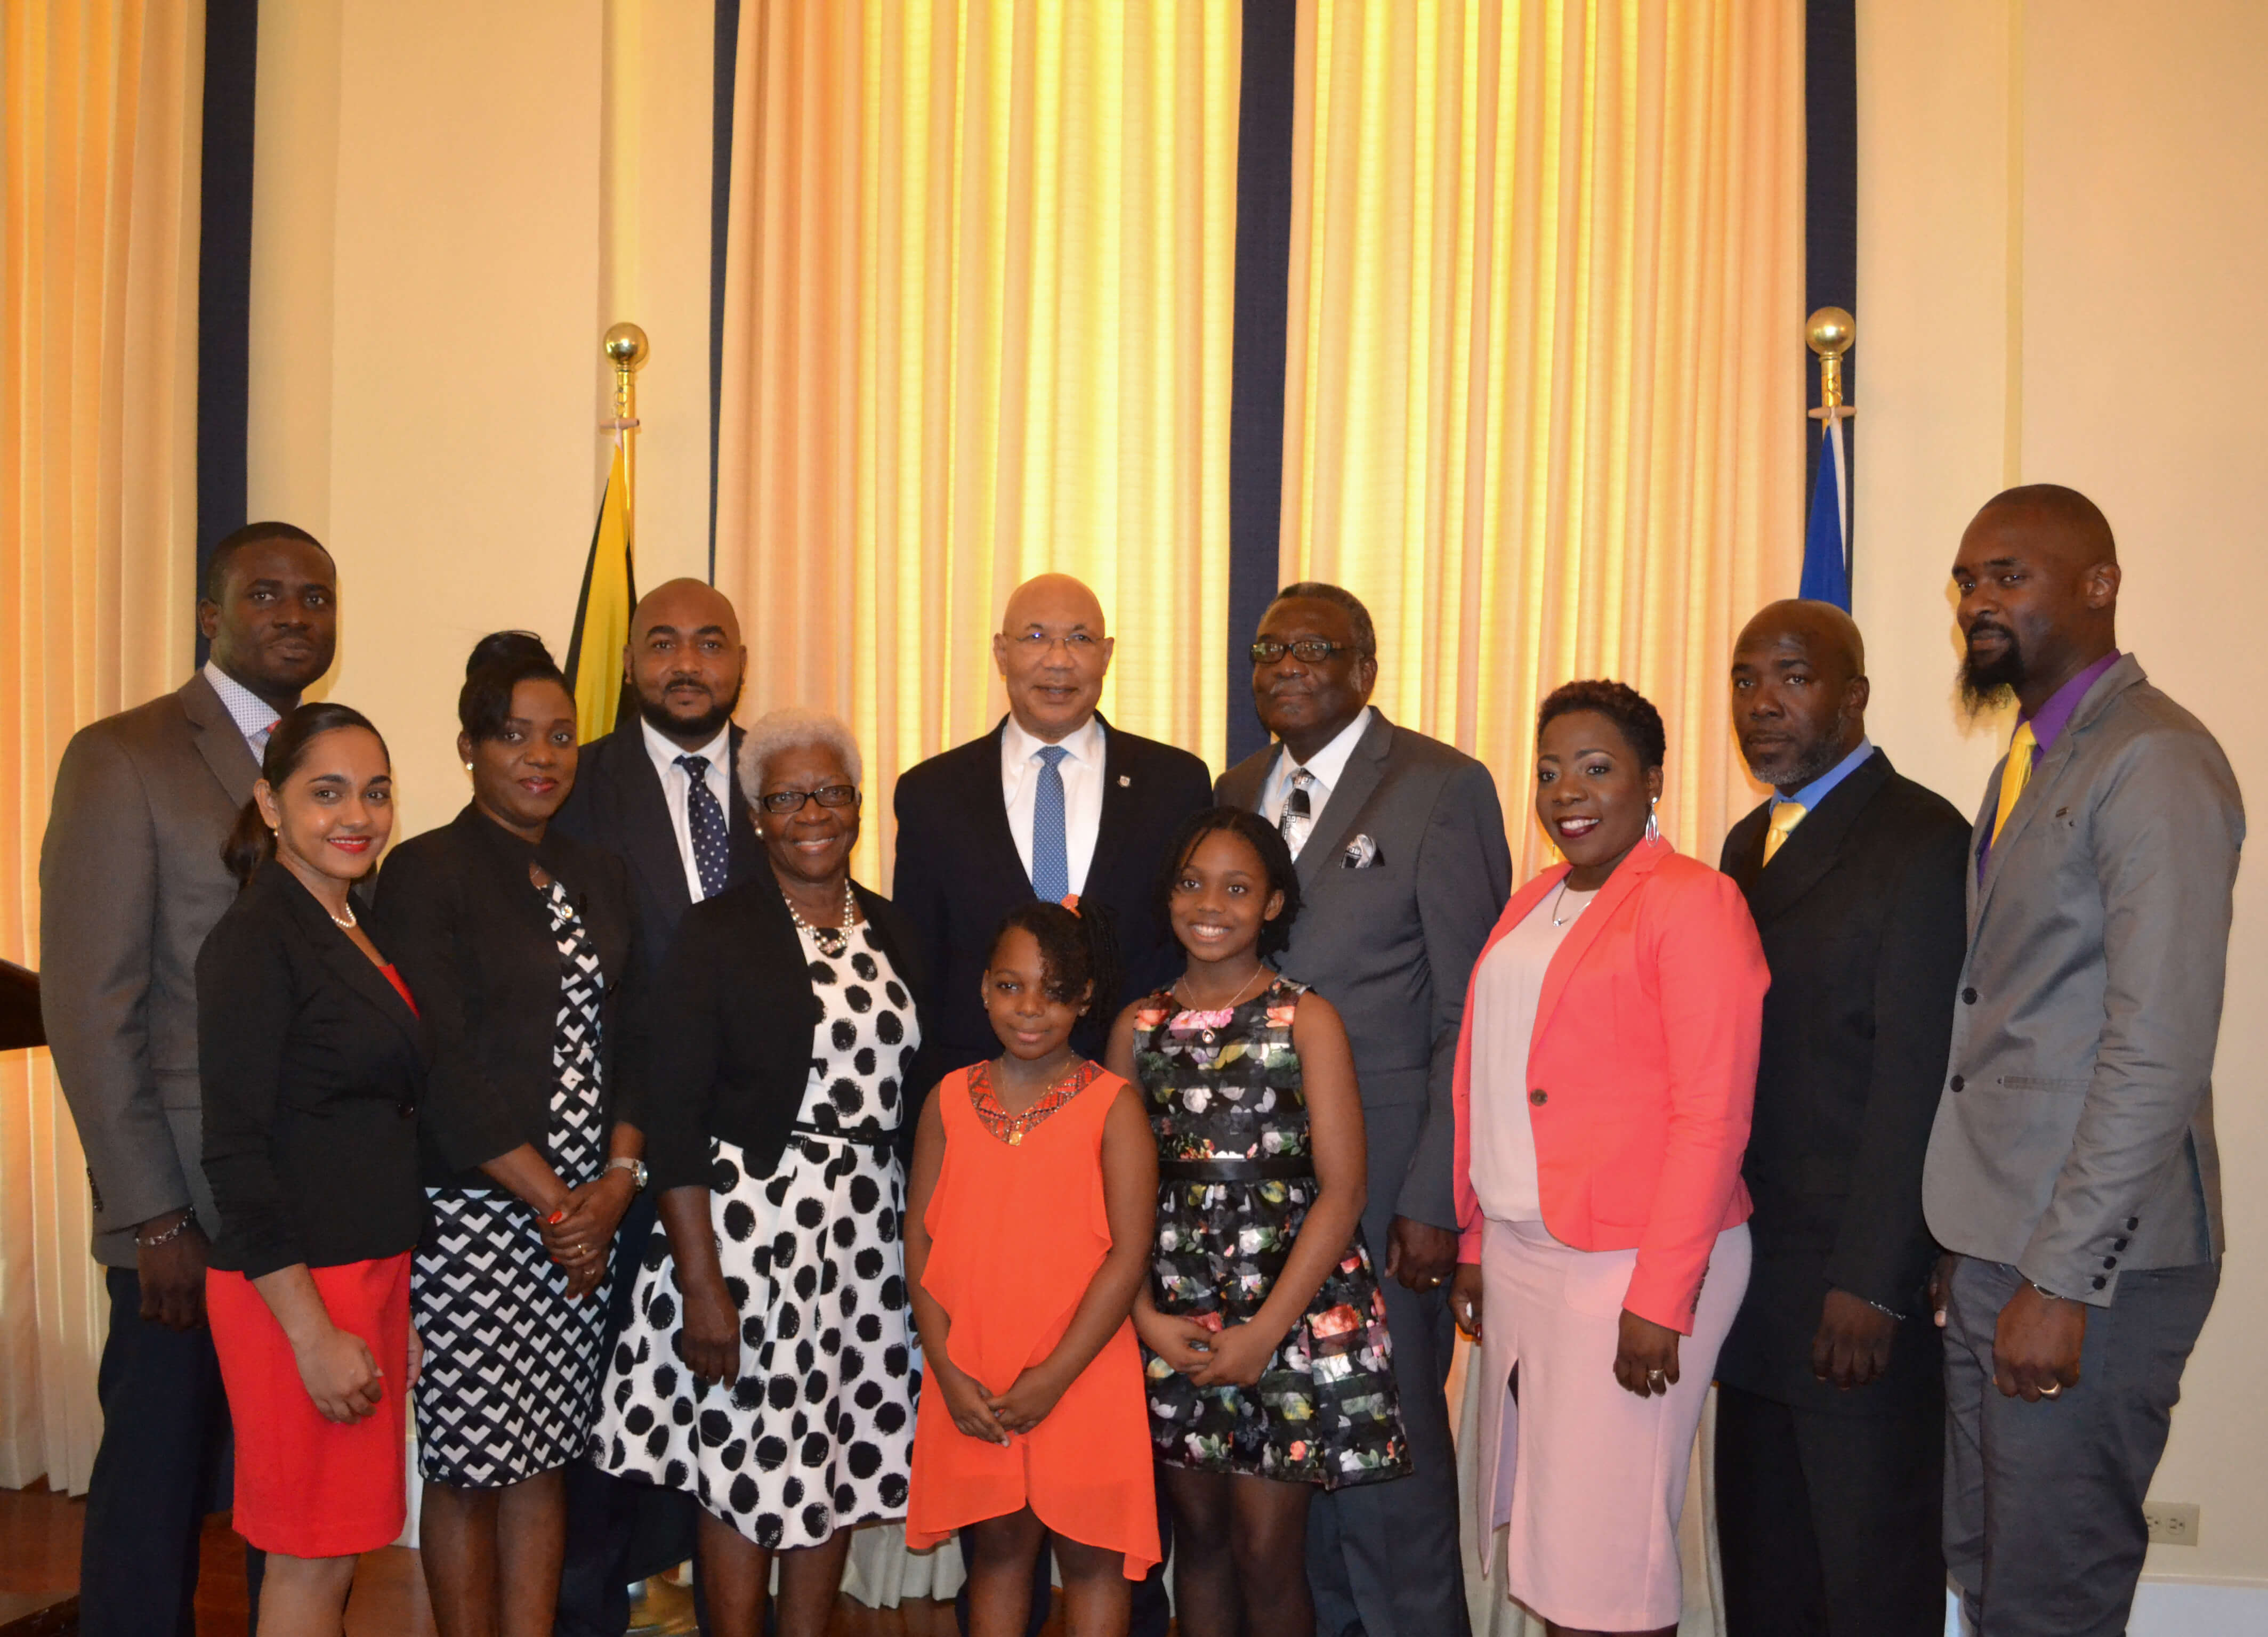 His Excellency the Most Honourable Sir Patrick Allen shares lens with Bishop Conrad Pitkin and his family following his swearing-in ceremony at King's House on January 29, 2018.